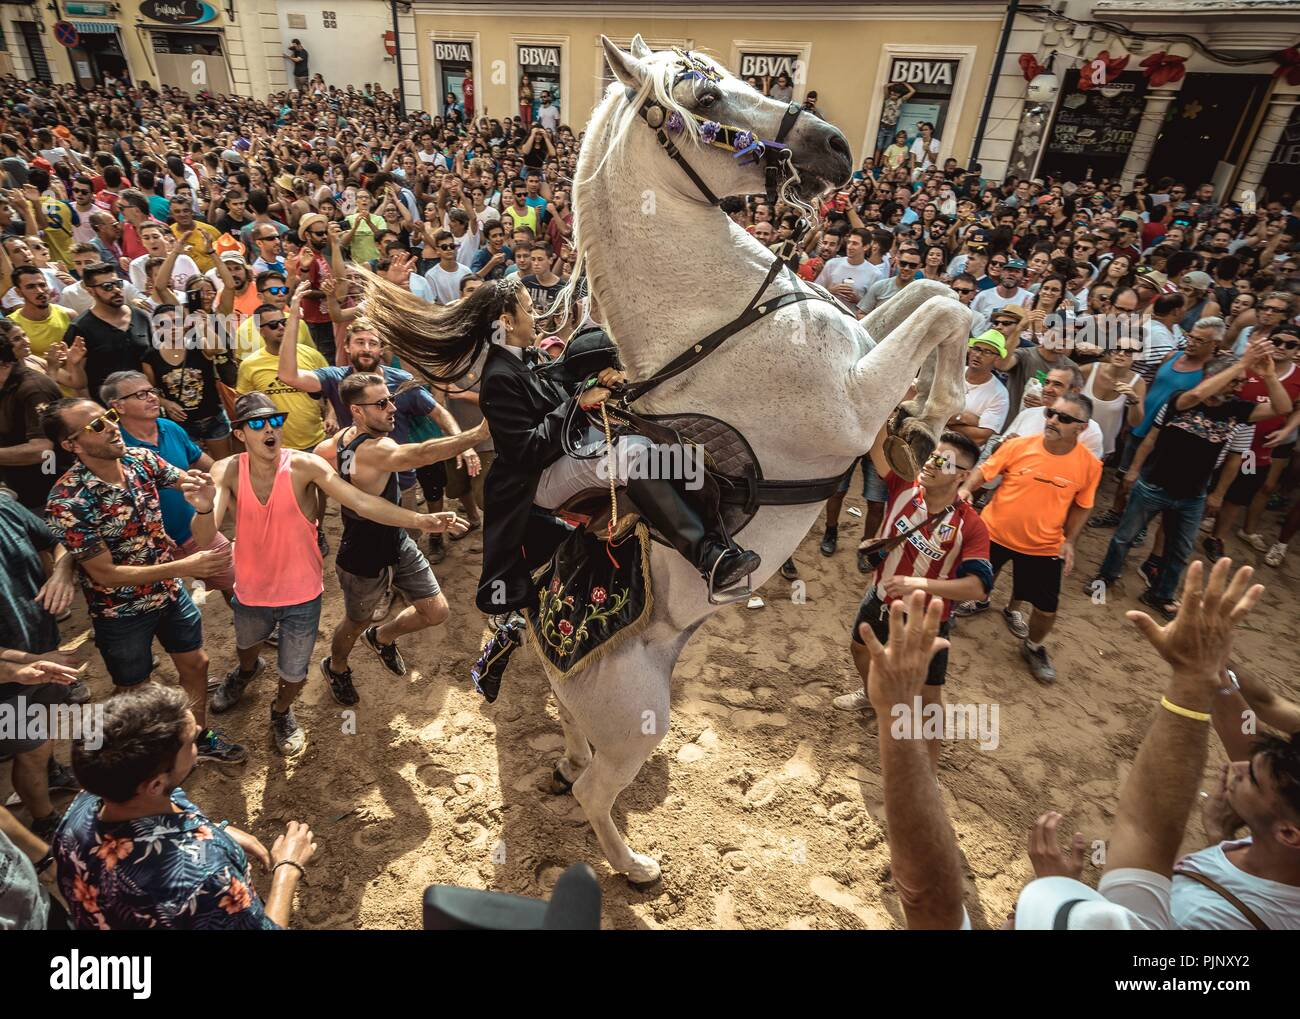 Mahon, Spain. 8 September, 2018:  A 'caixer' (horse rider) rears up on his horse after the 'Jaleo' of the traditional Gracia Festival in Mahon, celebrating its patron, Our Lady of Grace. Credit: Matthias Oesterle/Alamy Live News Stock Photo